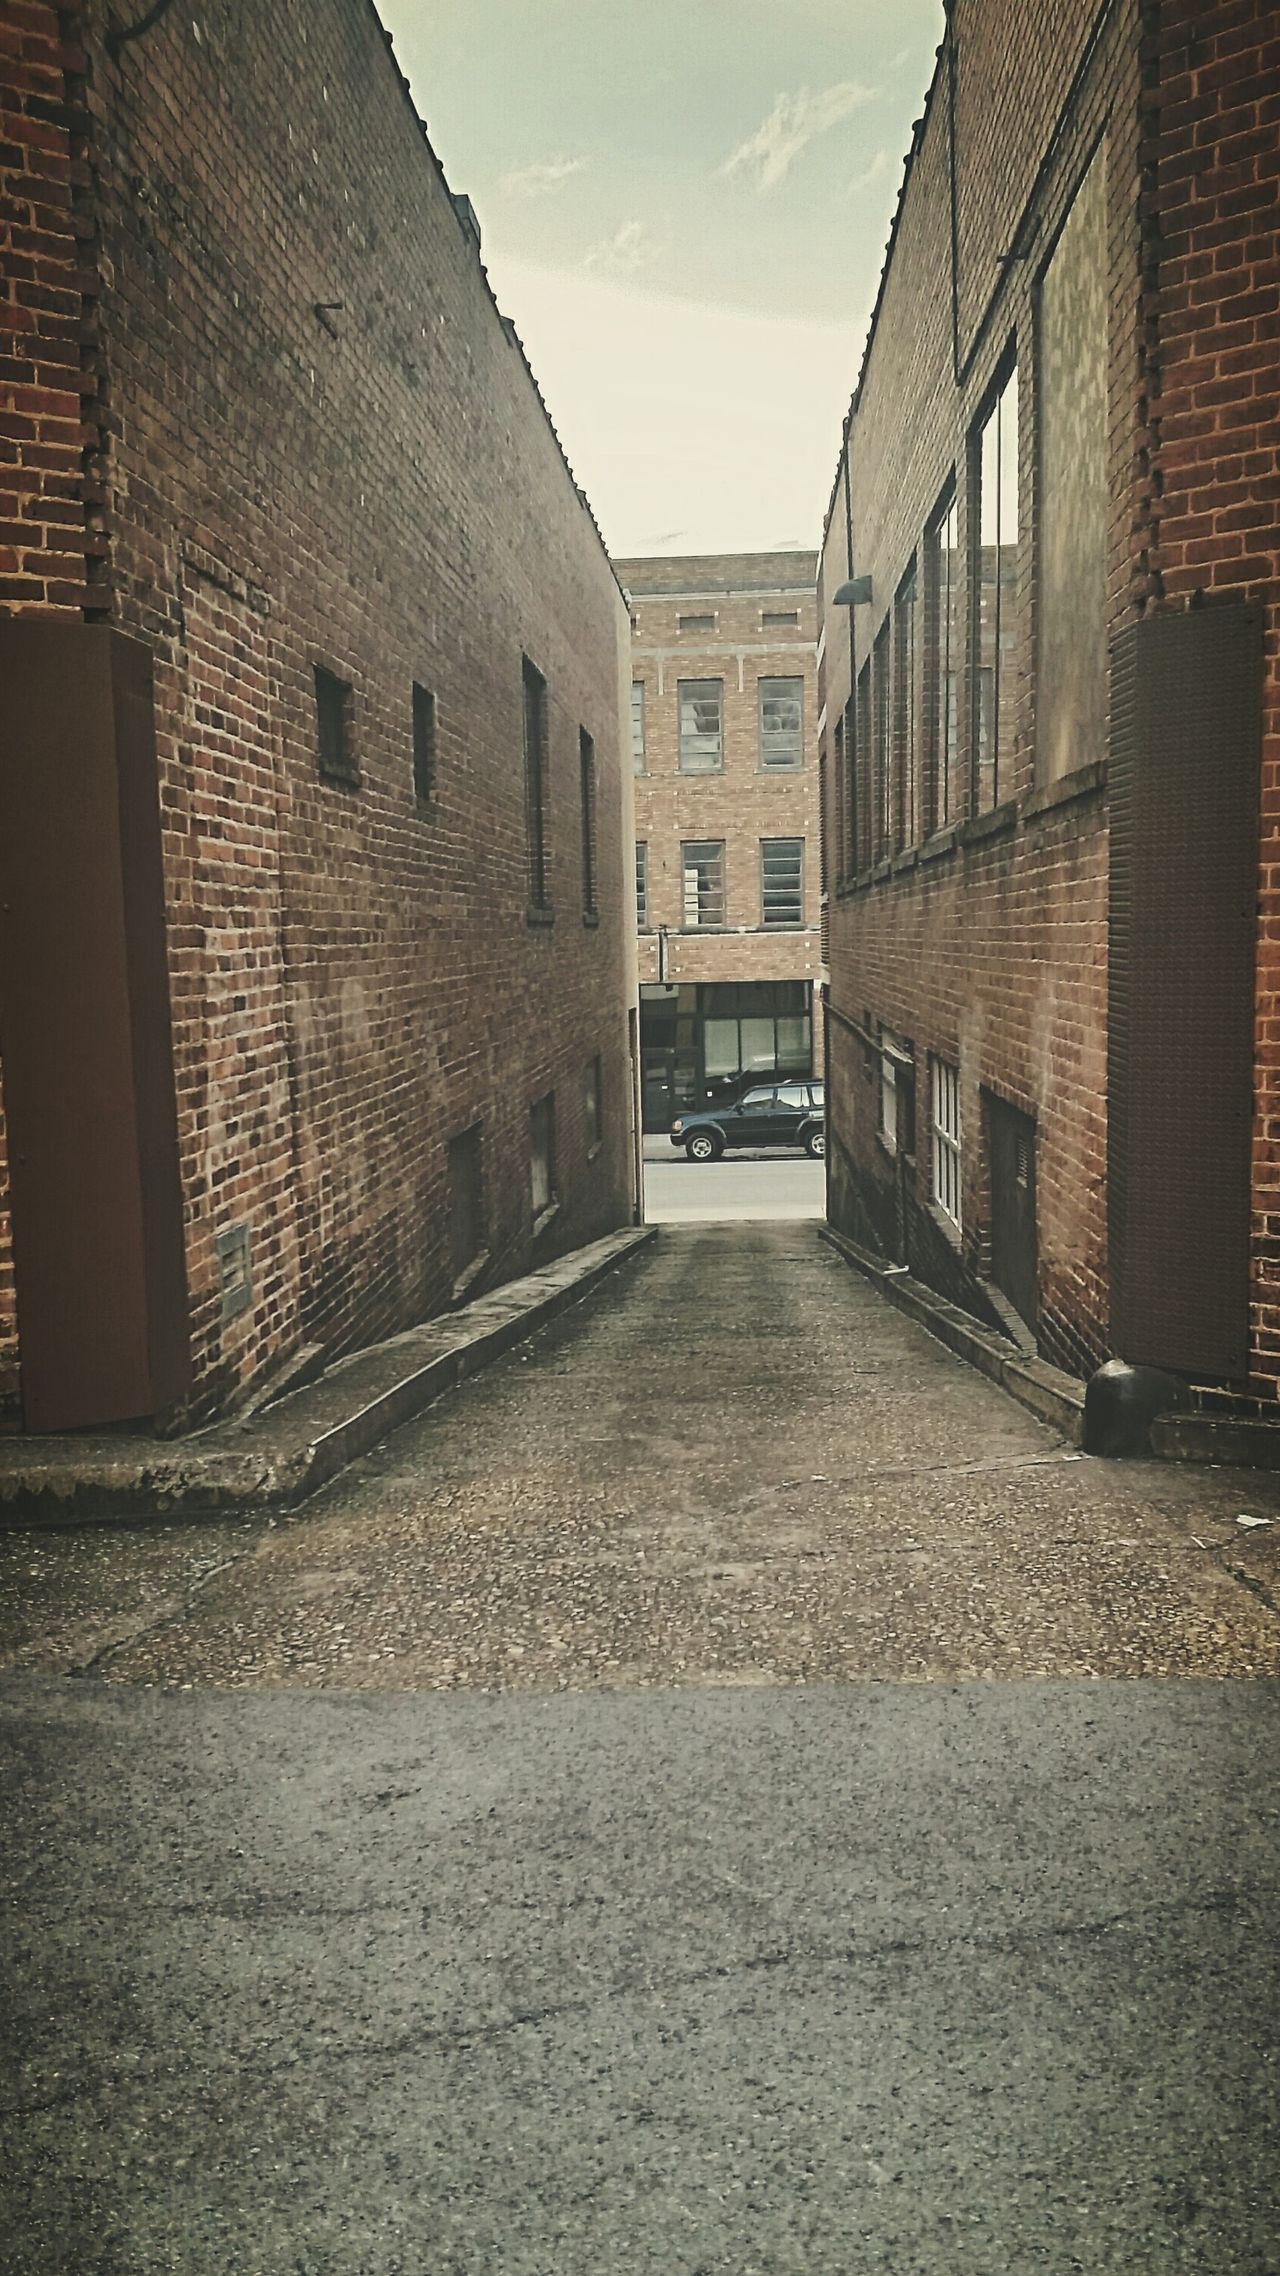 The Space Inbetween Center Focus Centerpoint Car Cityscapes Discover Your City My City I Love My City Alleyway Backstreets & Alleyways Hidden Places Stumbled Upon Drivebyphotography Ladyphotographerofthemonth Building Architecture AMPt - Street Streetphotography Open Edit Chattanoogastrong Chattanooga Shootermag Tennessee Downtown Streamzoofamily